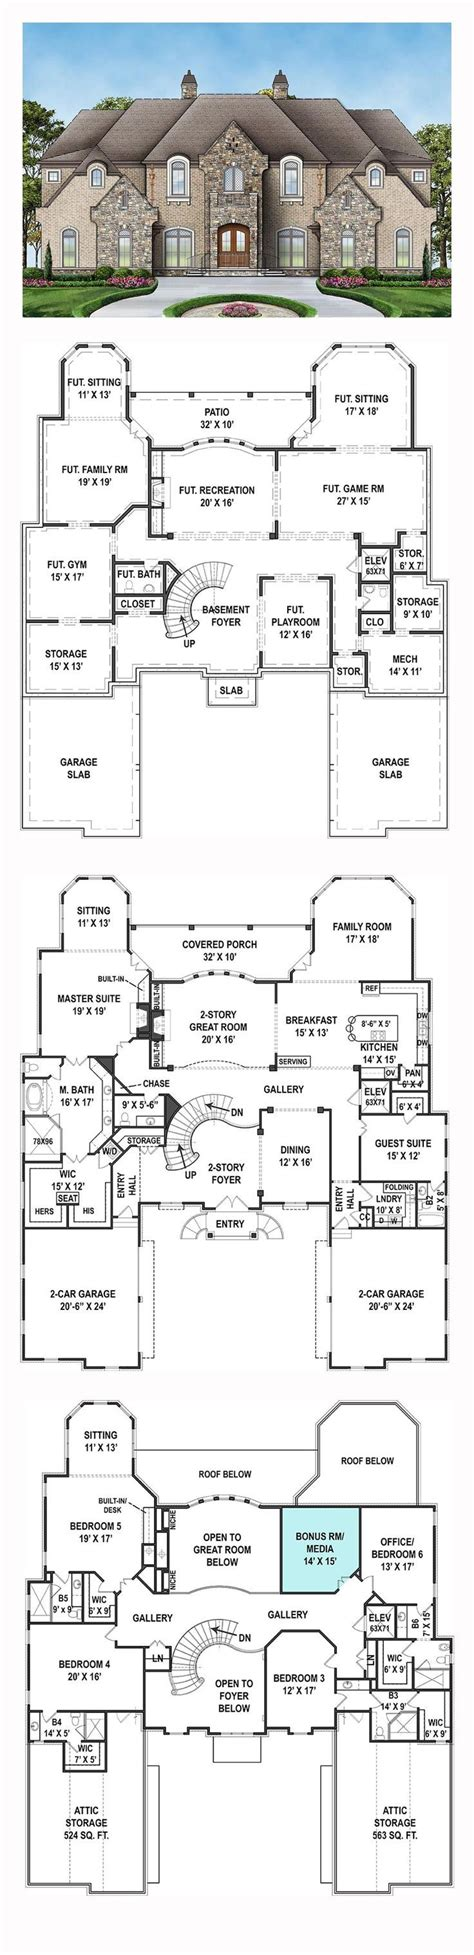 luxury house floor plans best 25 new house plans ideas on house plans